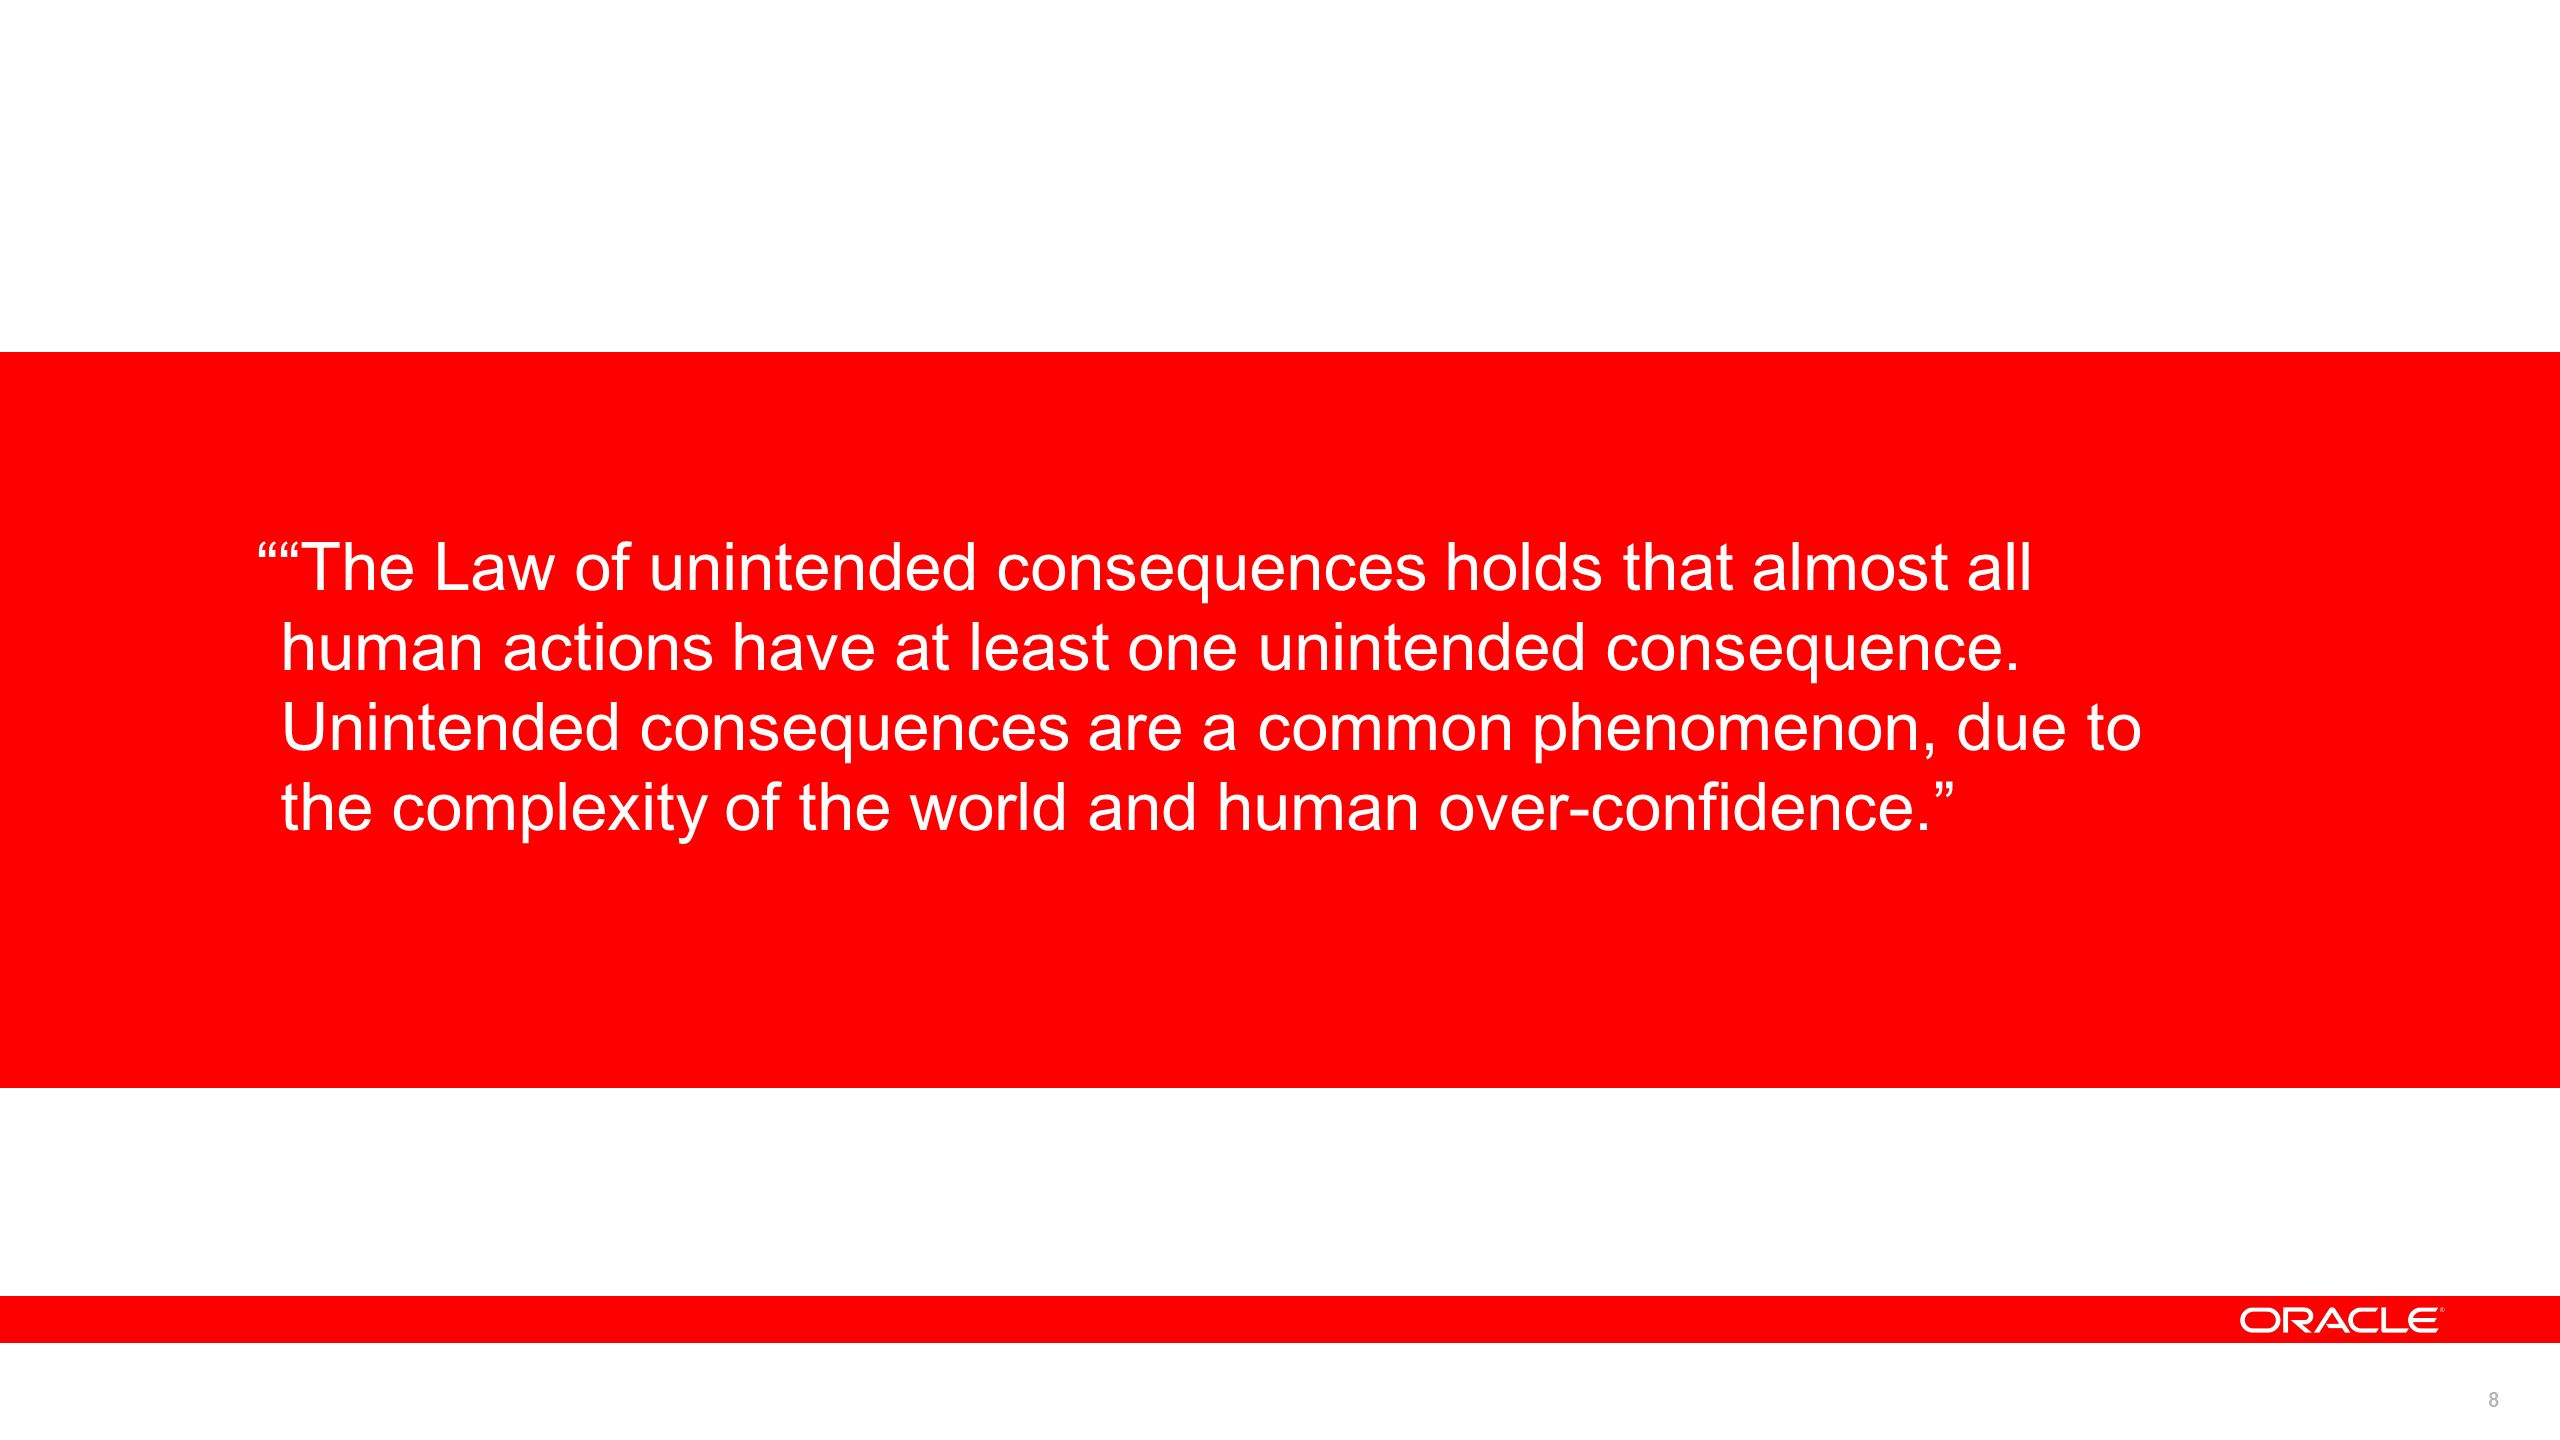 8 The Law of unintended consequences holds that almost all human actions have at least one unintended consequence. Unintended consequences are a commo